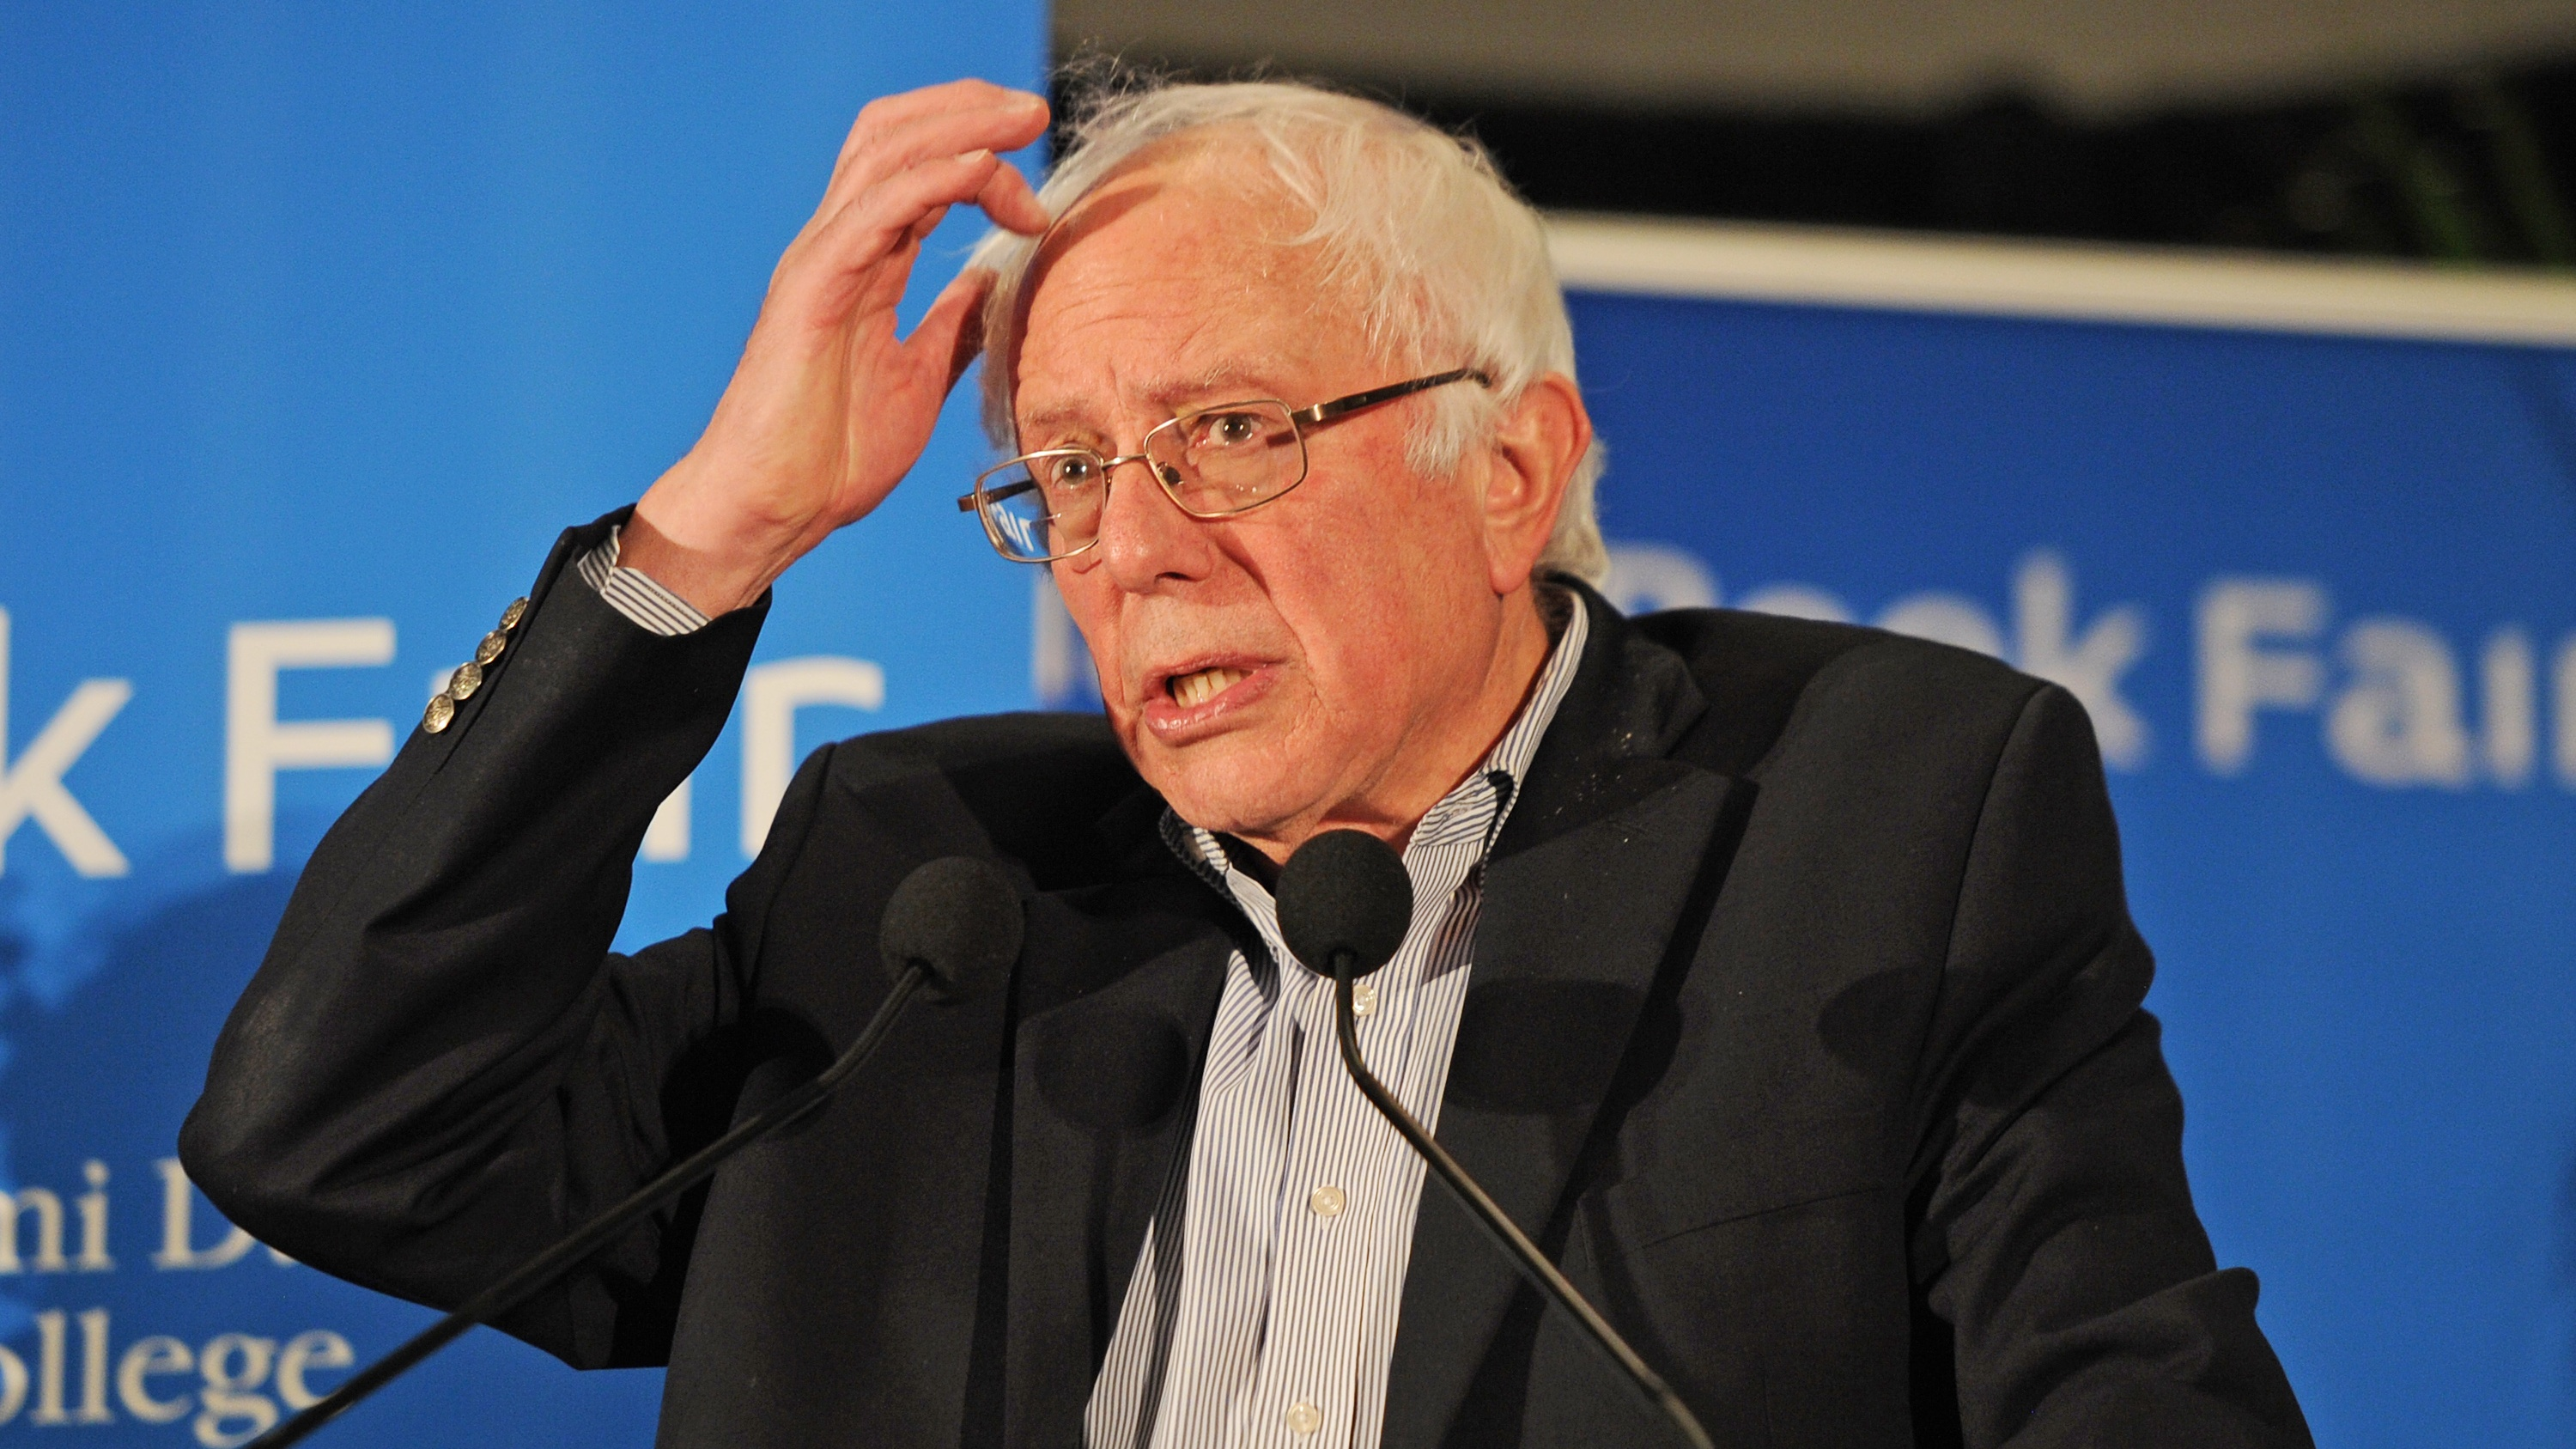 Bernie Sanders speaks during the 2016 Miami Book Fair at Miami Dade College on November 19, 2016 in Miami Florida. Credit: mpi04/MediaPunch/IPX